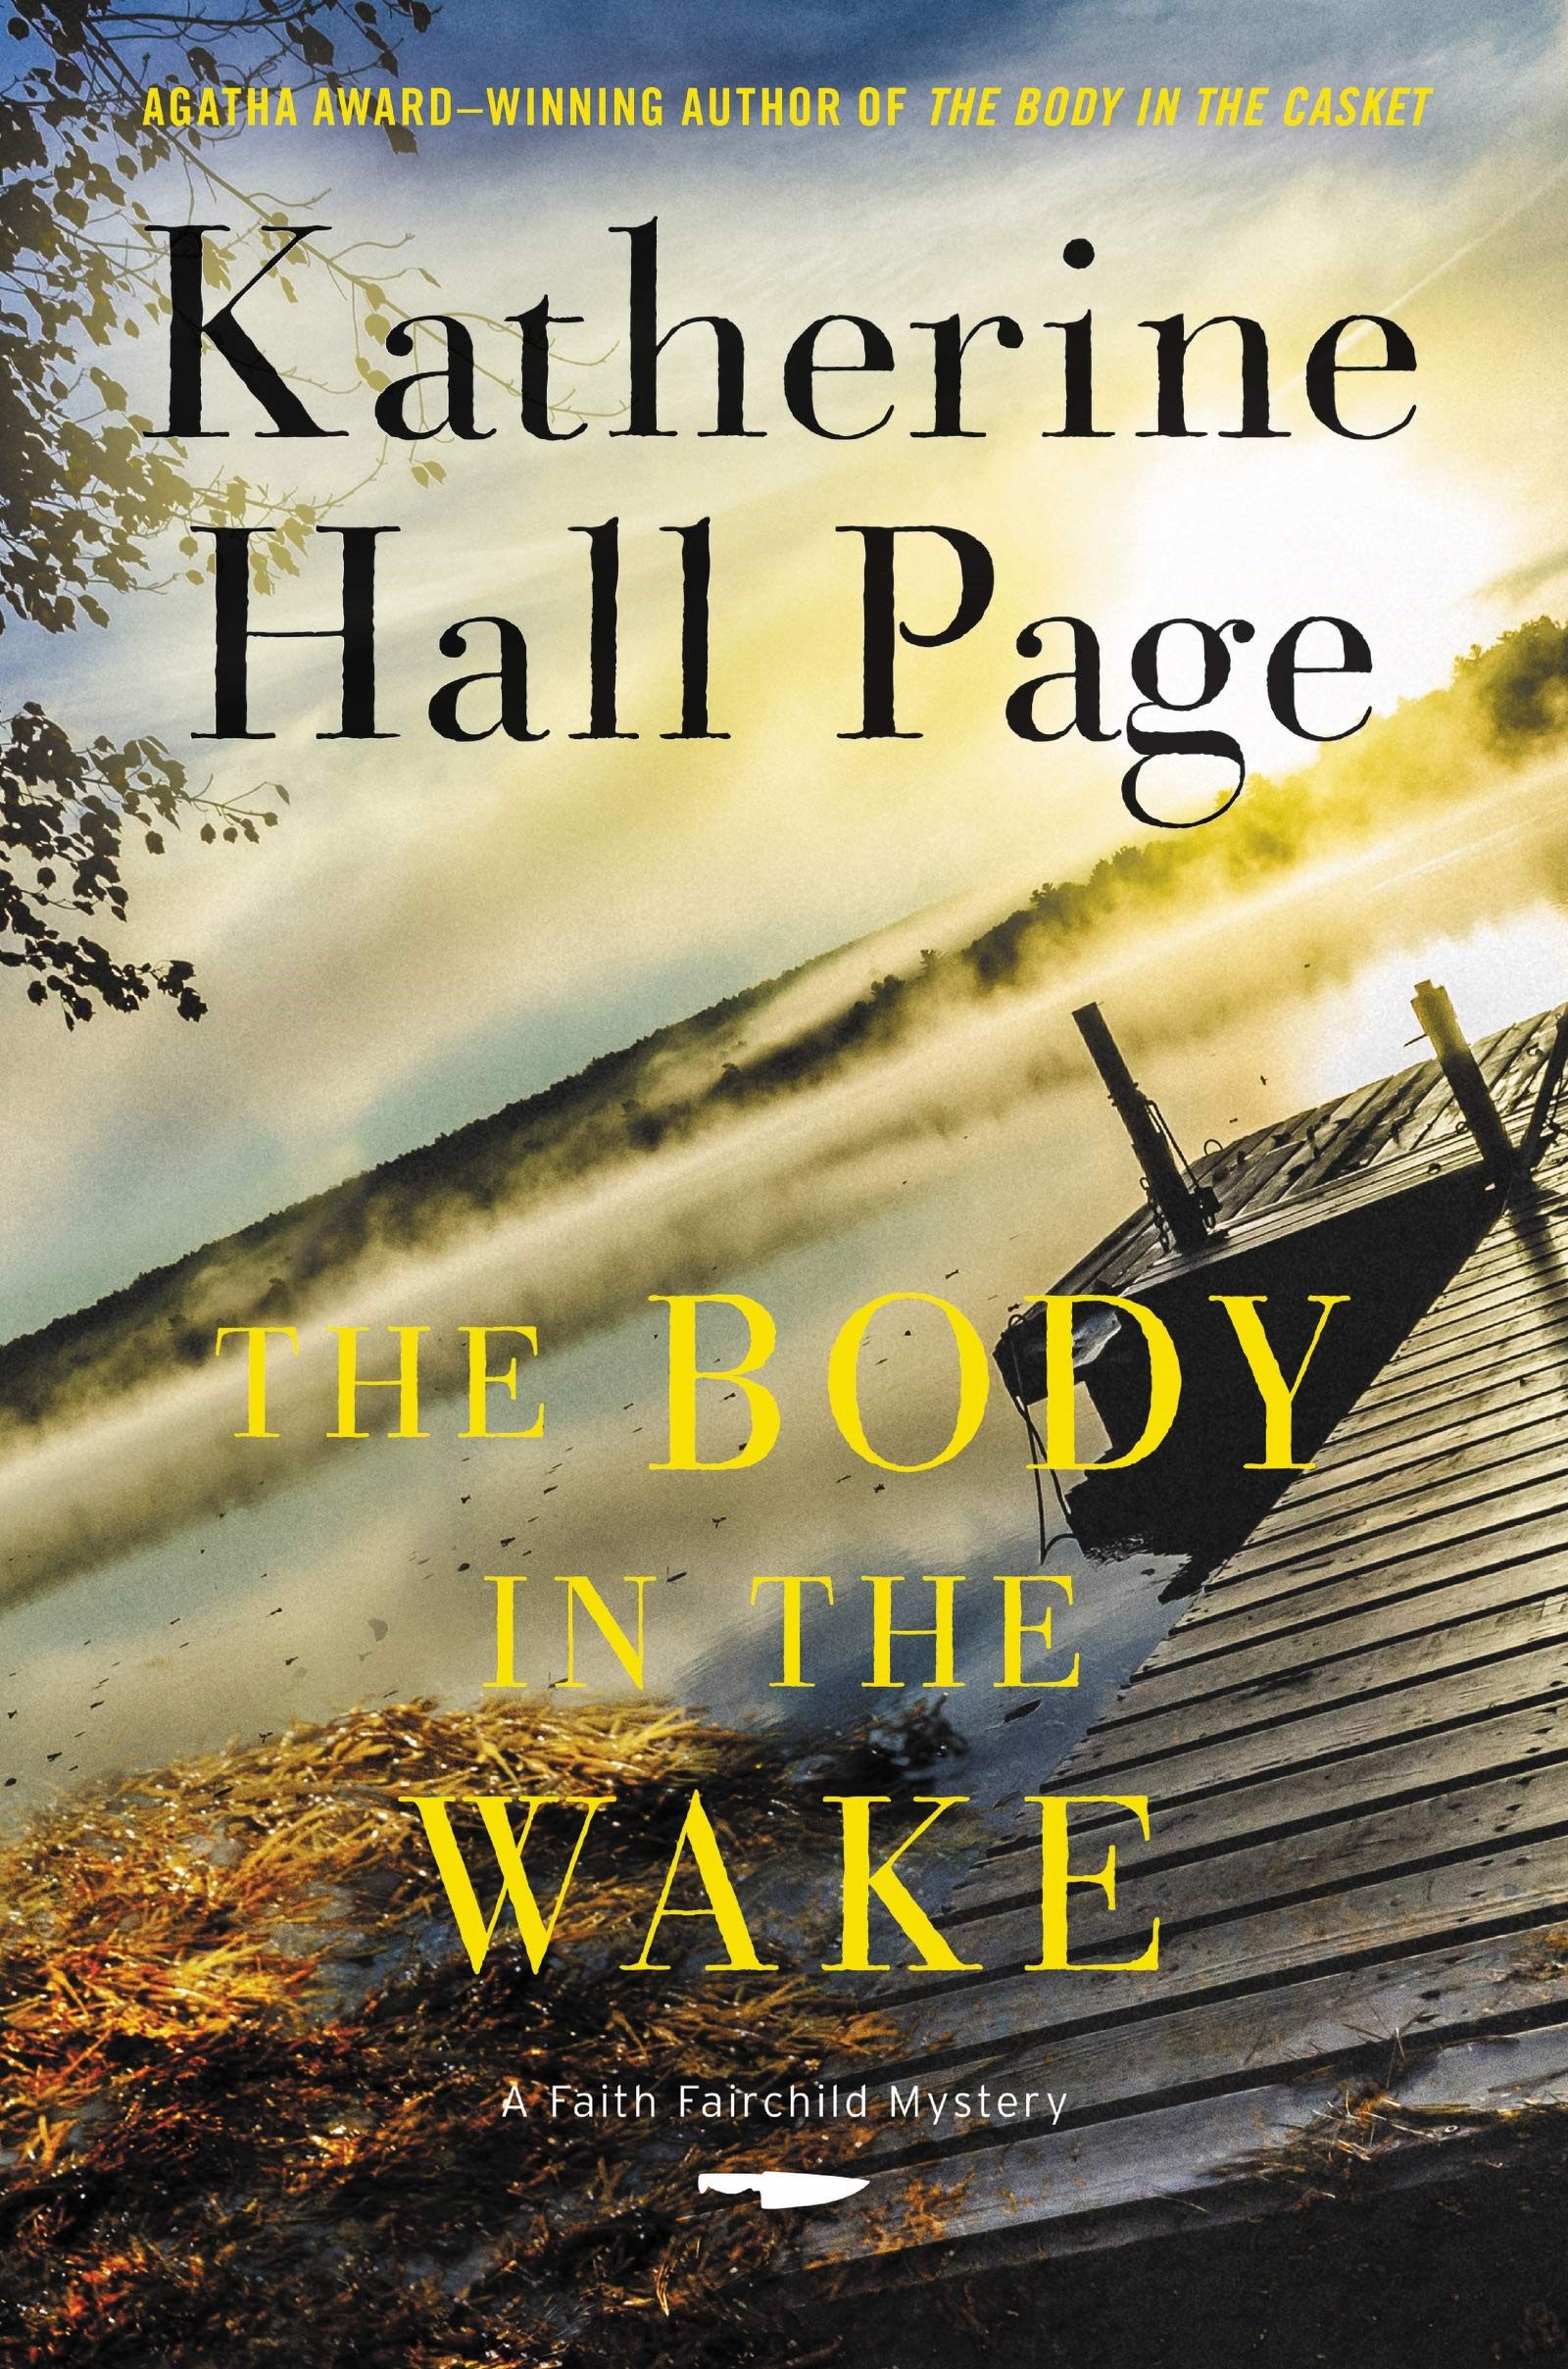 Page, THE BODY IN THE WAKE, US cover.jpg